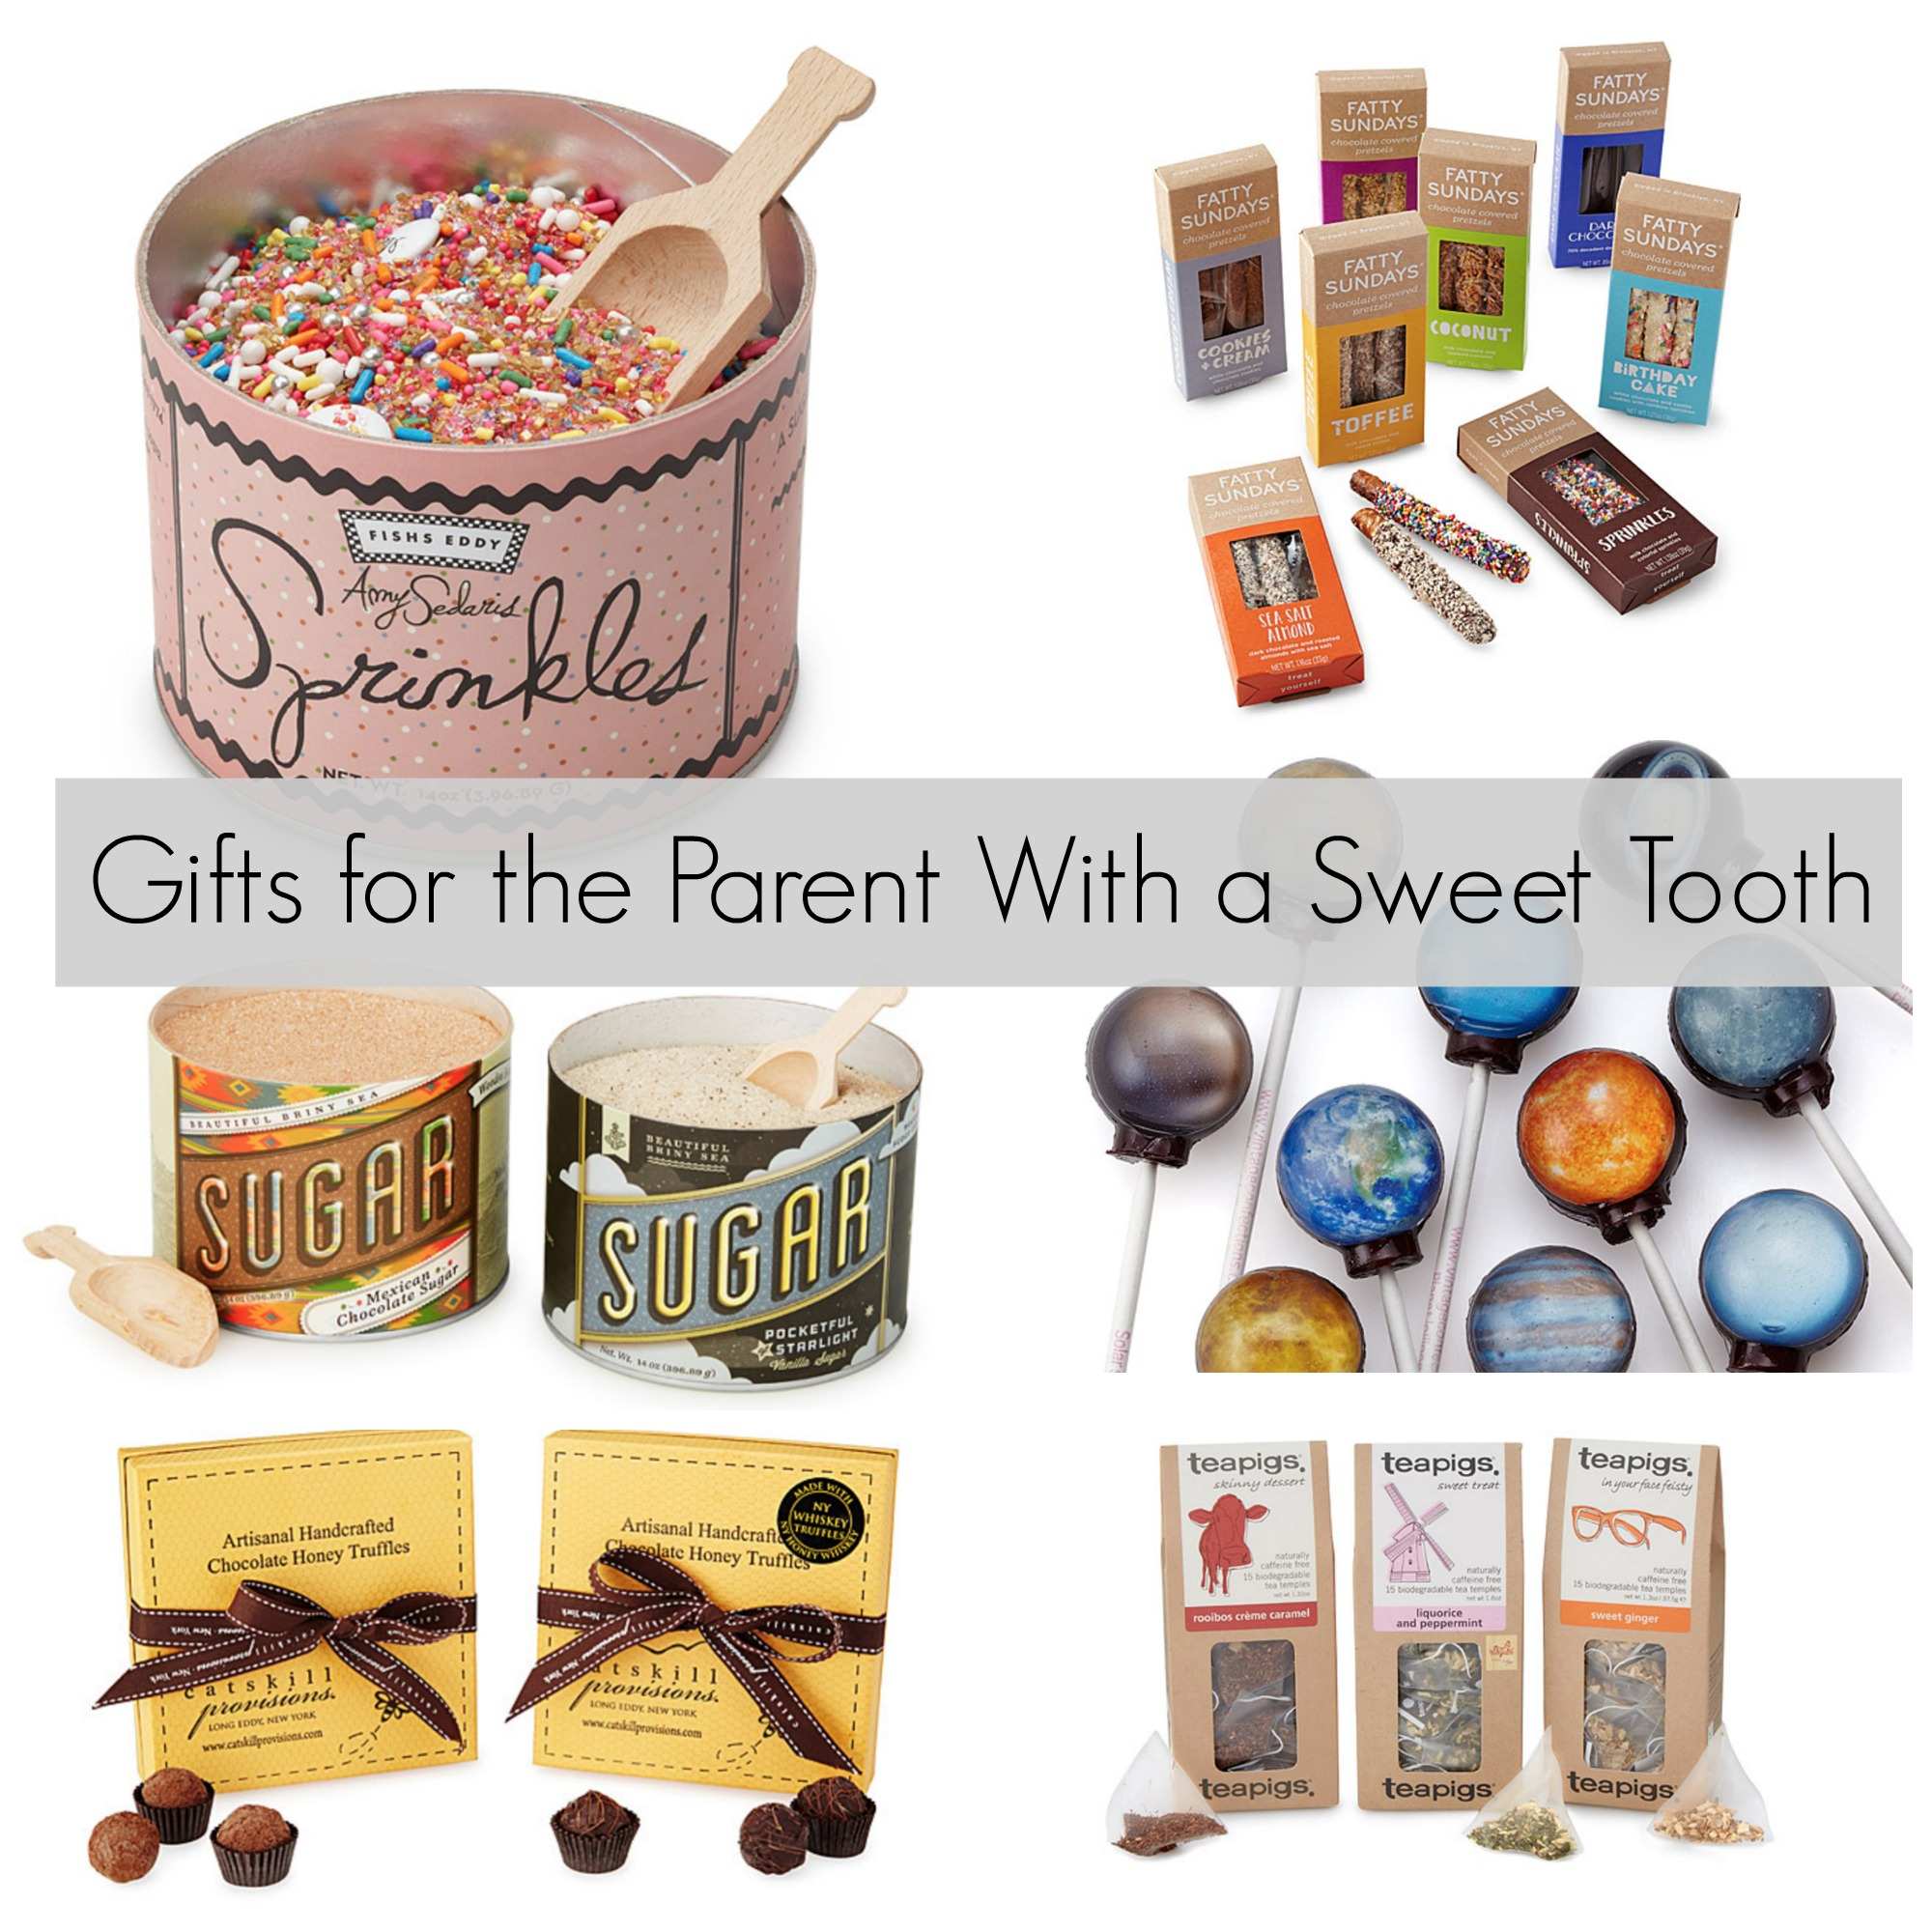 Gifts For The Parent With A Sweet Tooth Party Sprinkles Gourmet Chocolate Covered Pretzels And Vanilla Cane Sugar Planet Lollipops